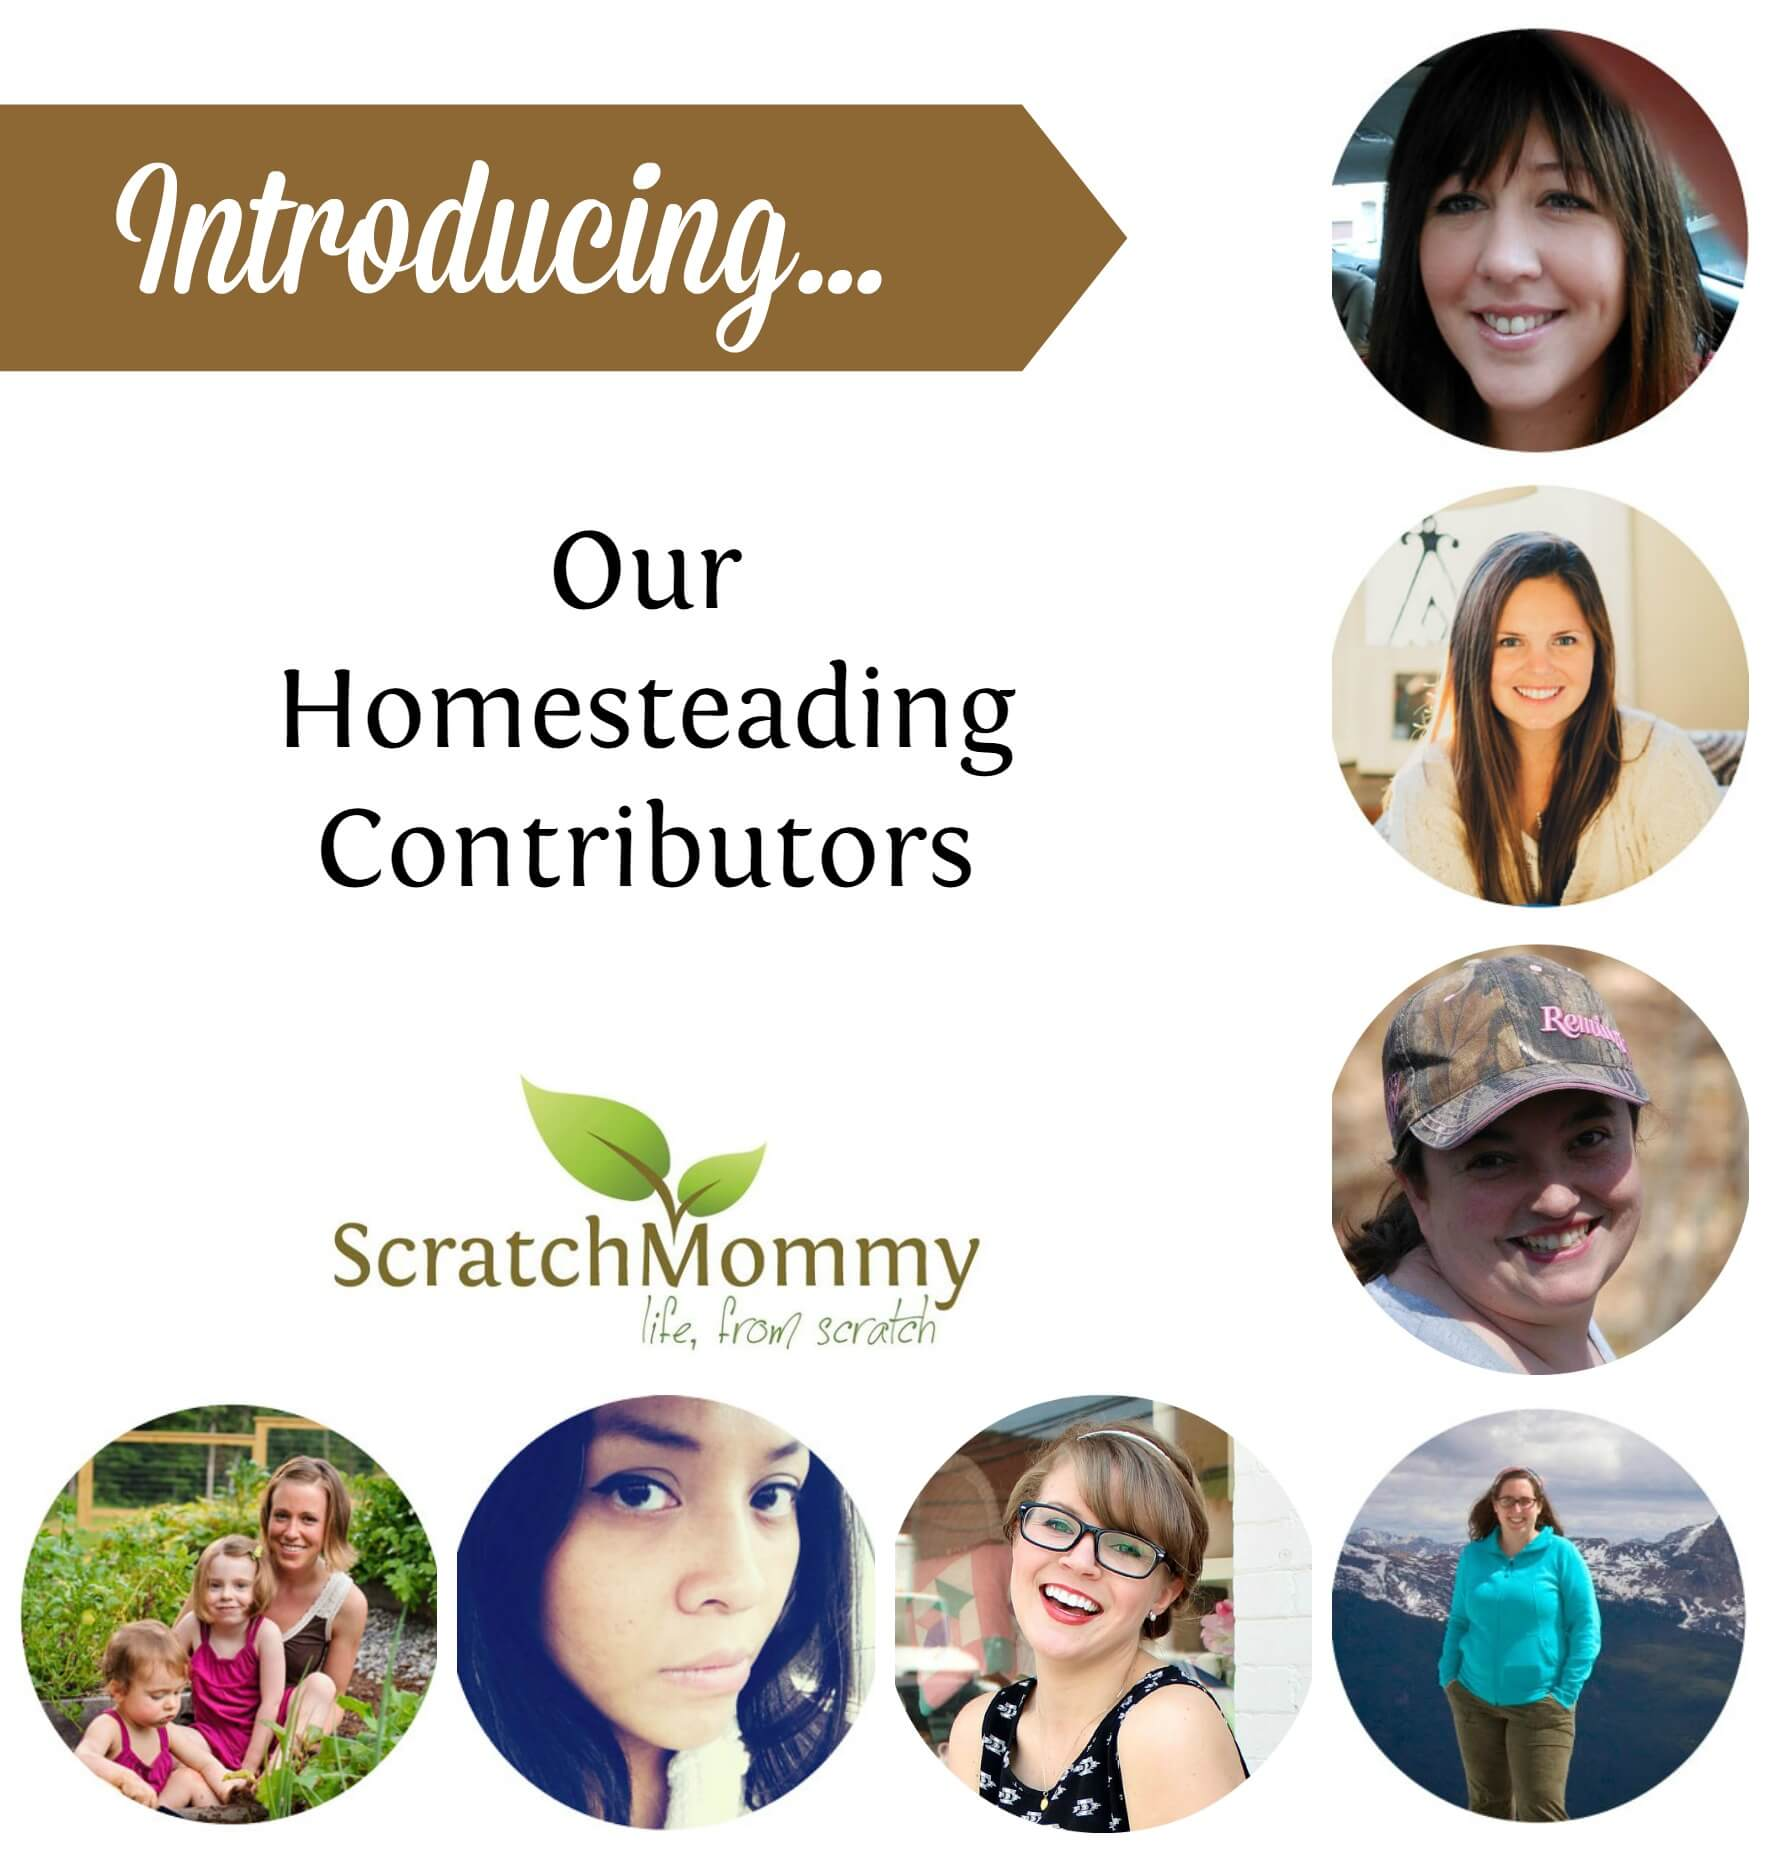 Meet our very talented homesteading contributors for the re-birth of Scratch Mommy!